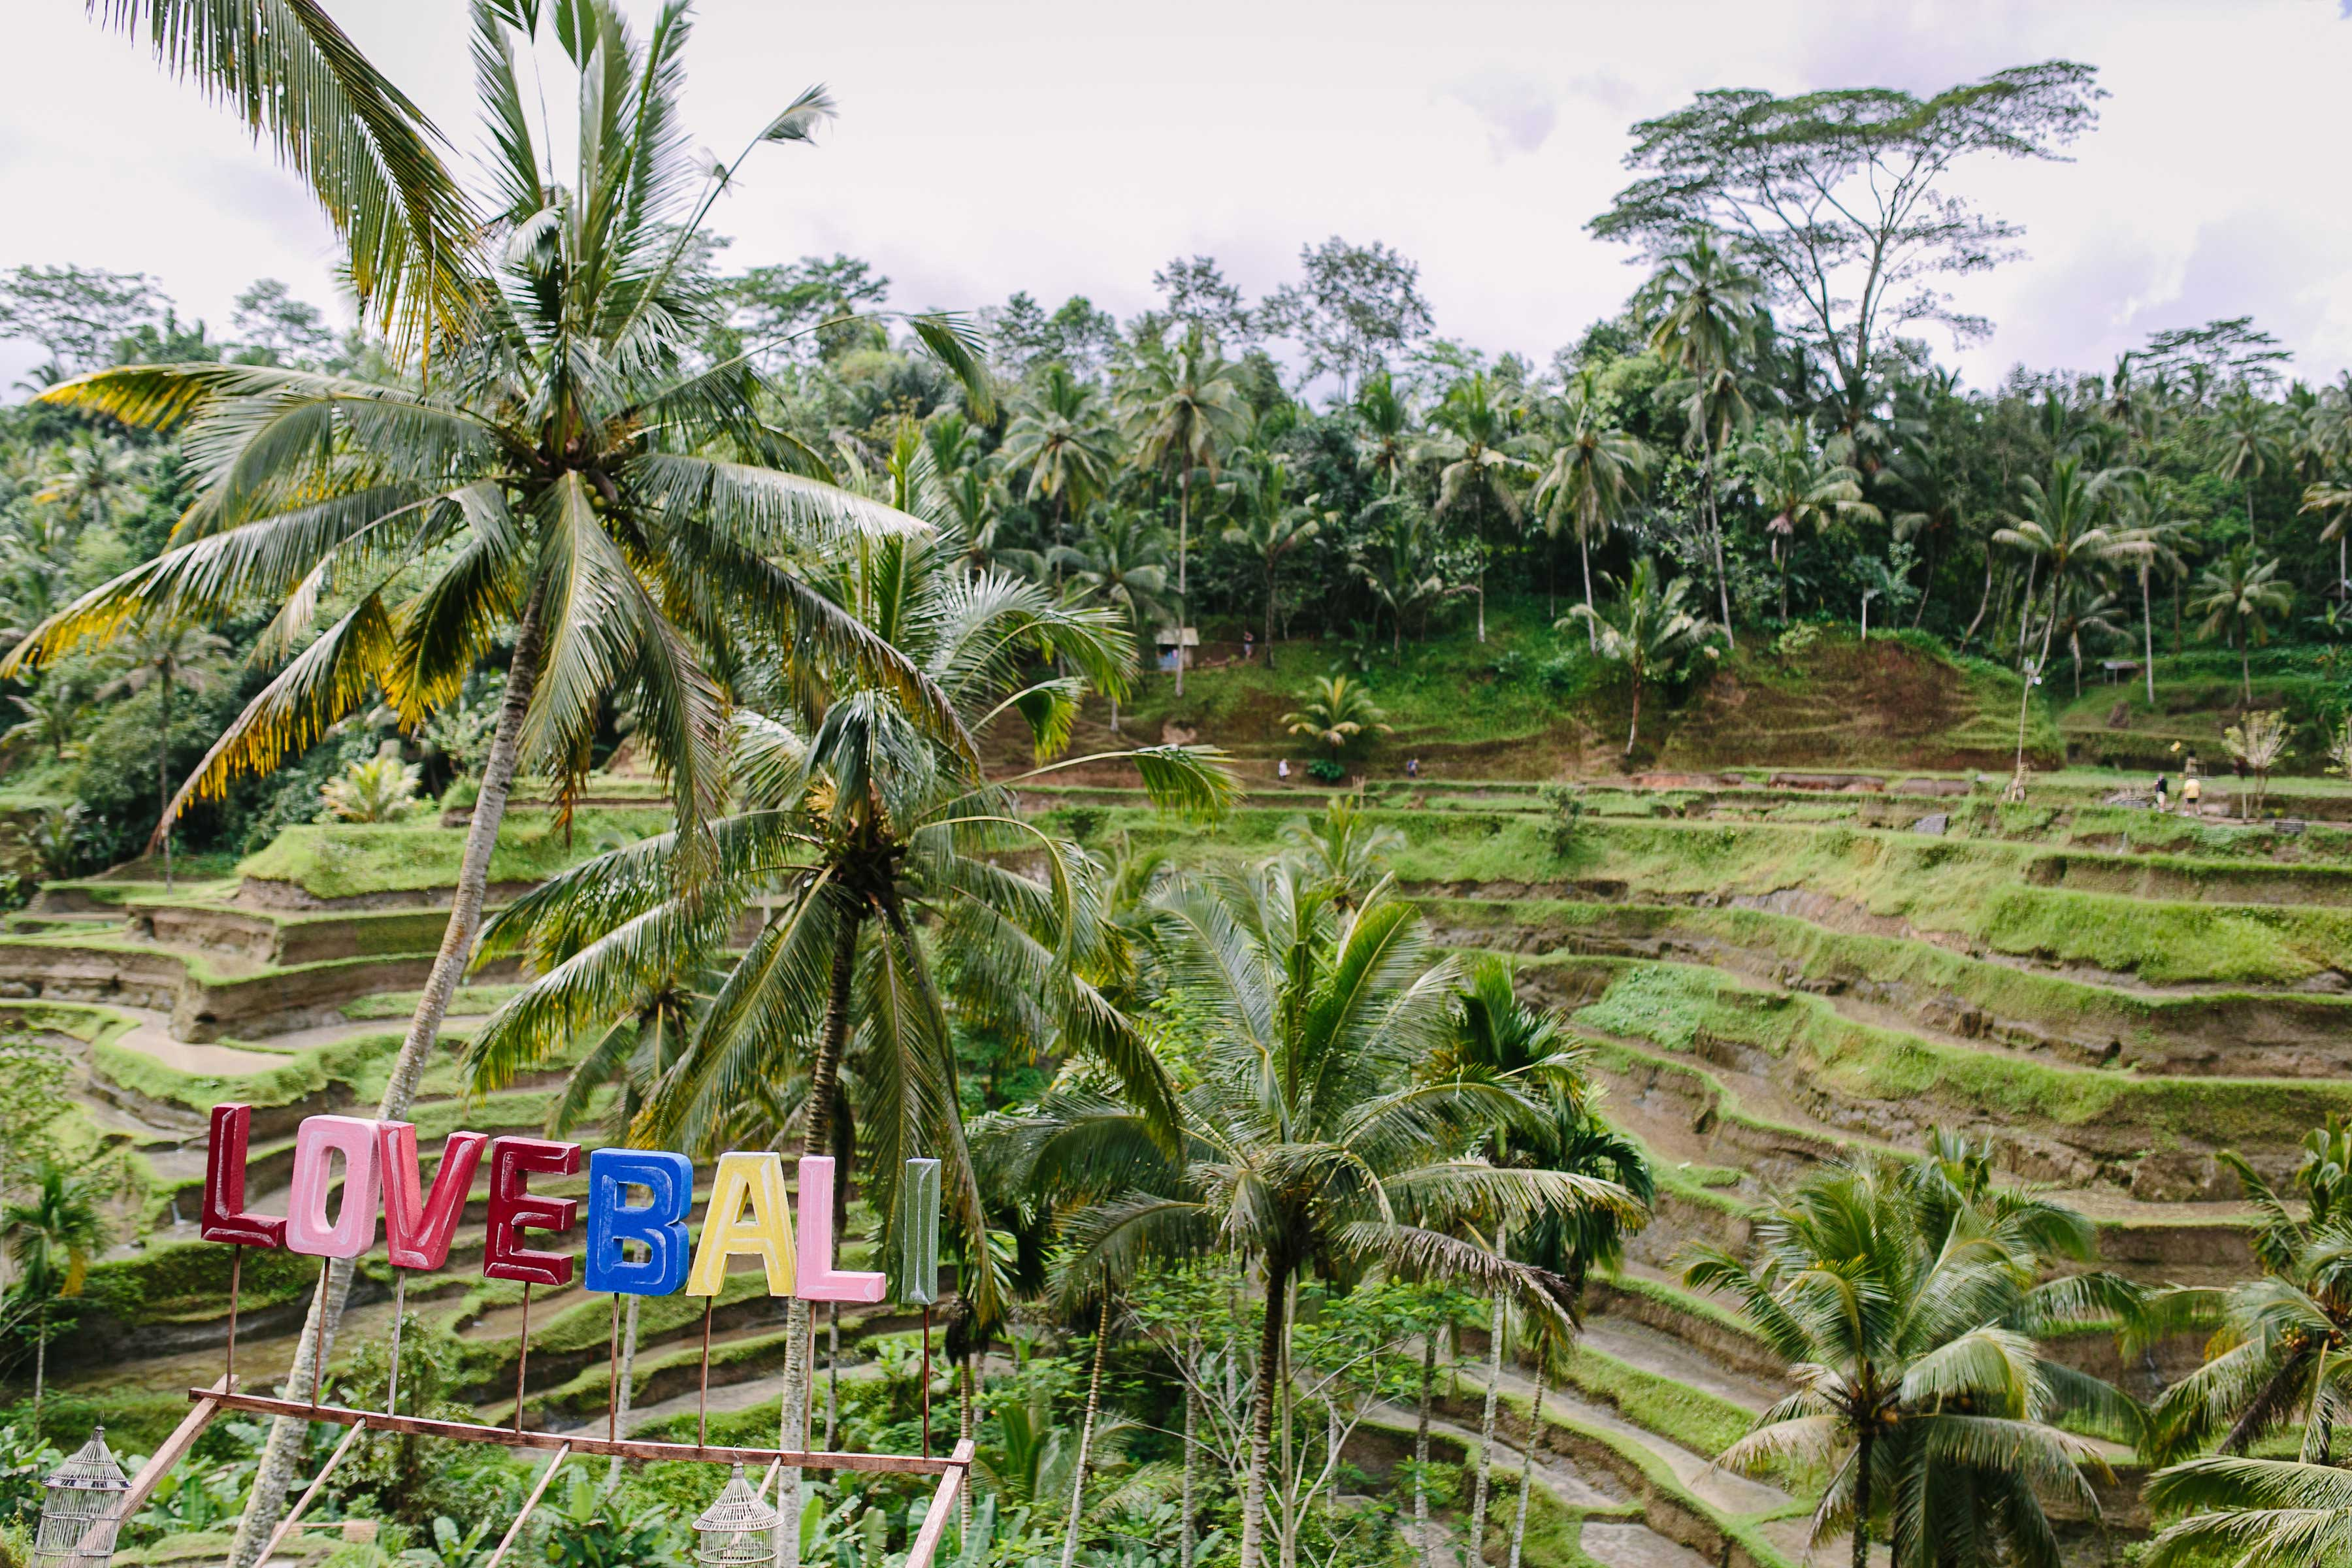 Love Bali rice fields Marry at the Mulia Bali